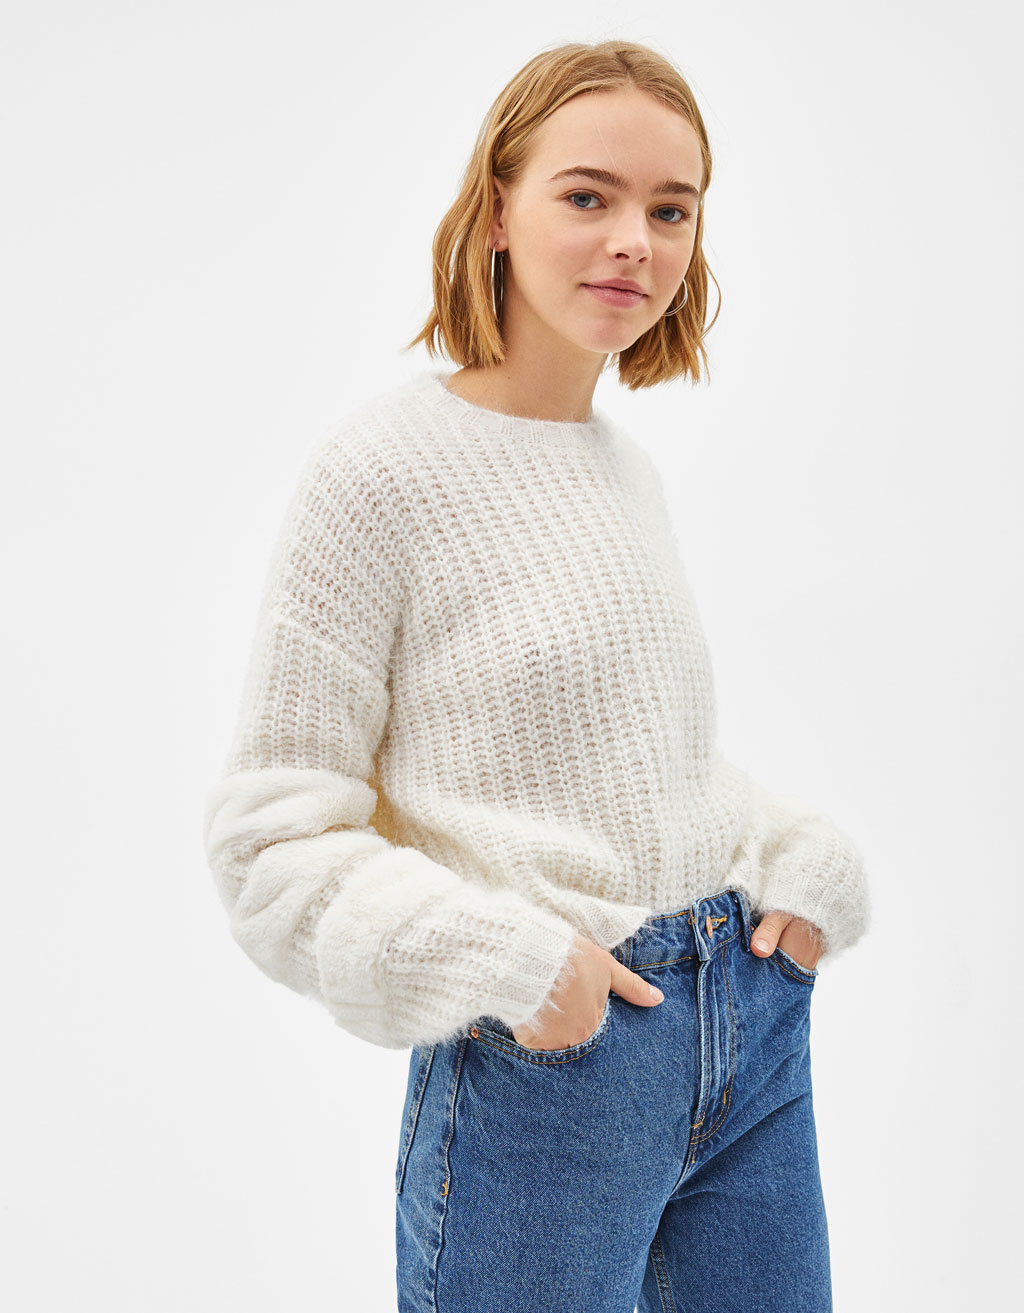 Sweater with fuzzy stripes